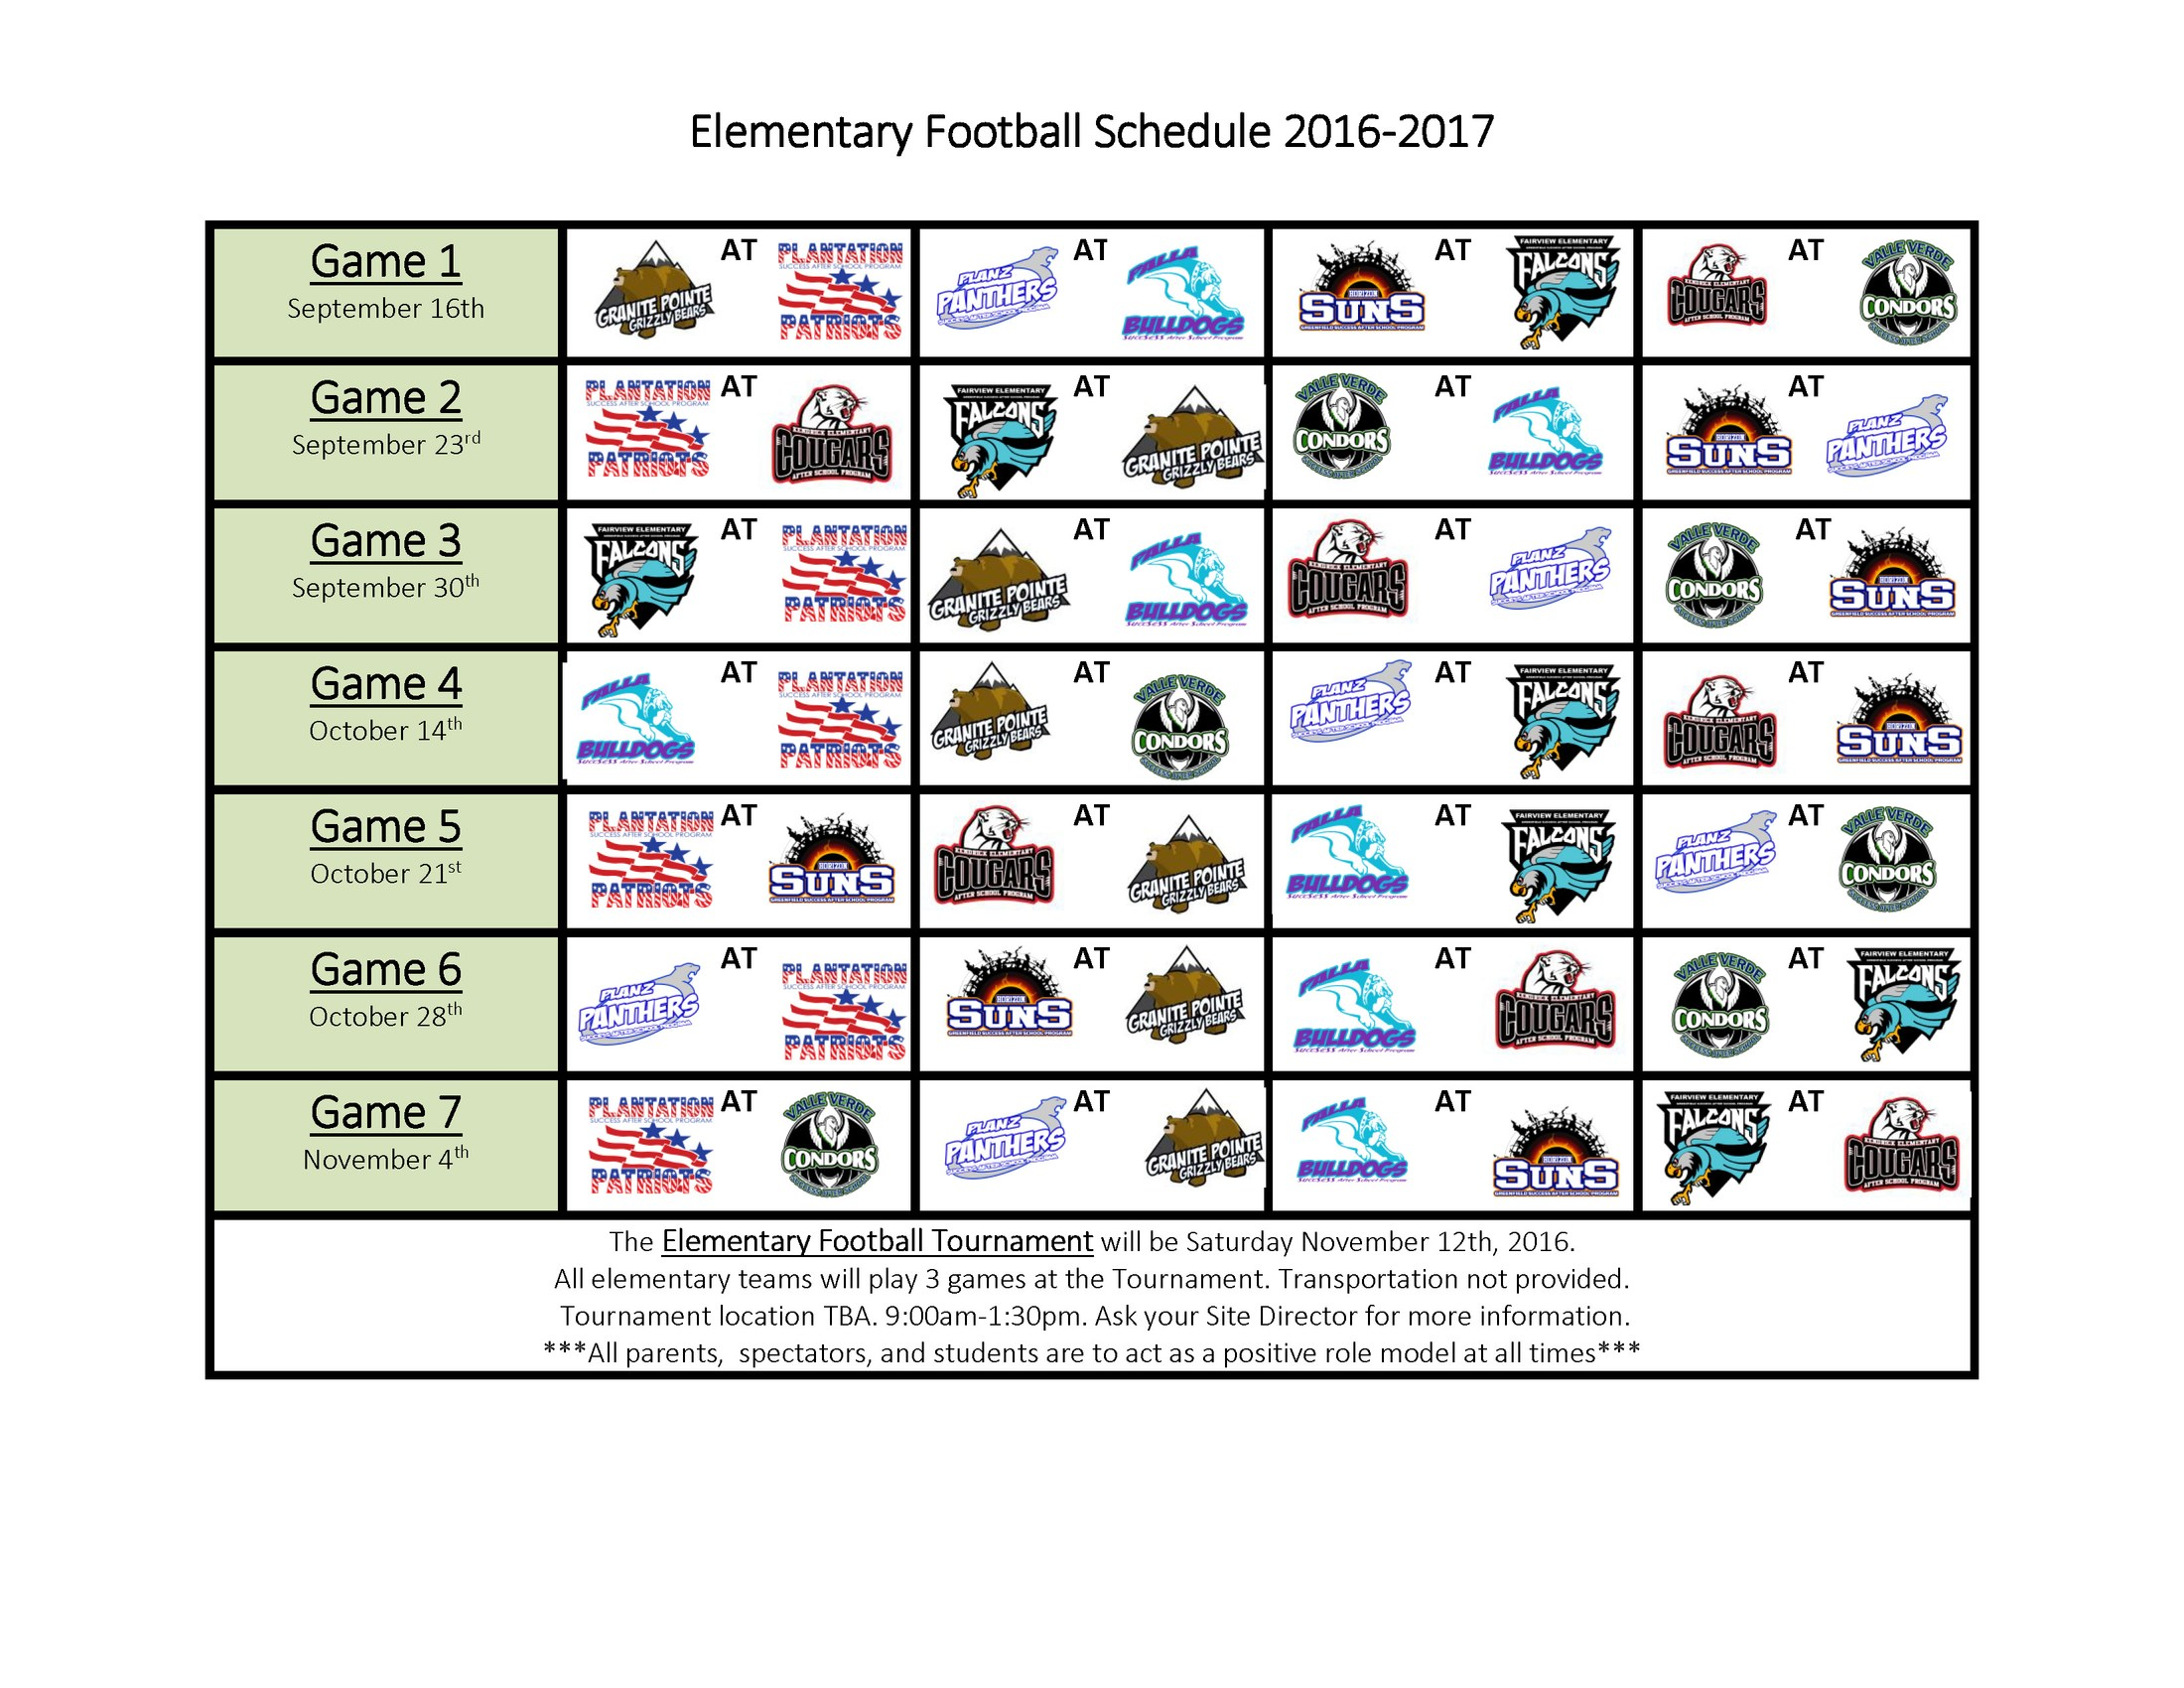 Elementary Football Schedule for the 2016 2017 school year.